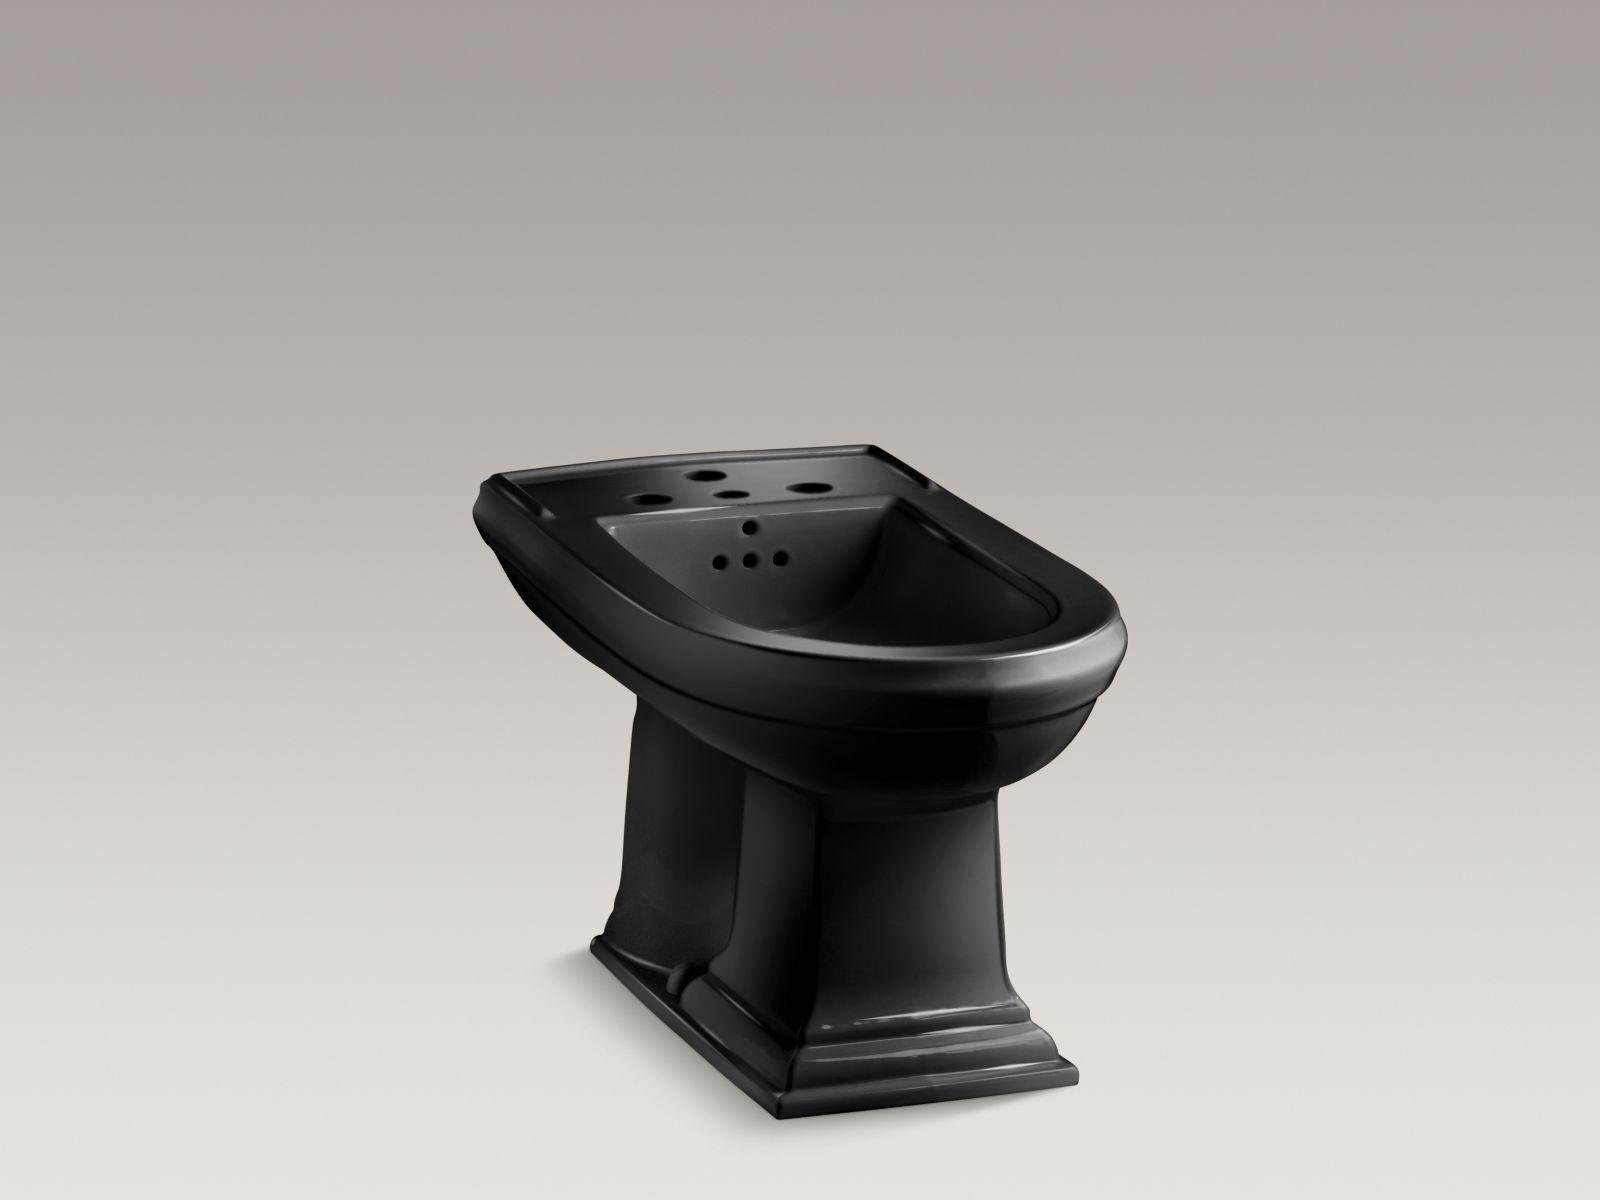 Kohler K-4886-7 Memoirs Vertical Spray Bidet with 4 Faucet Holes Black